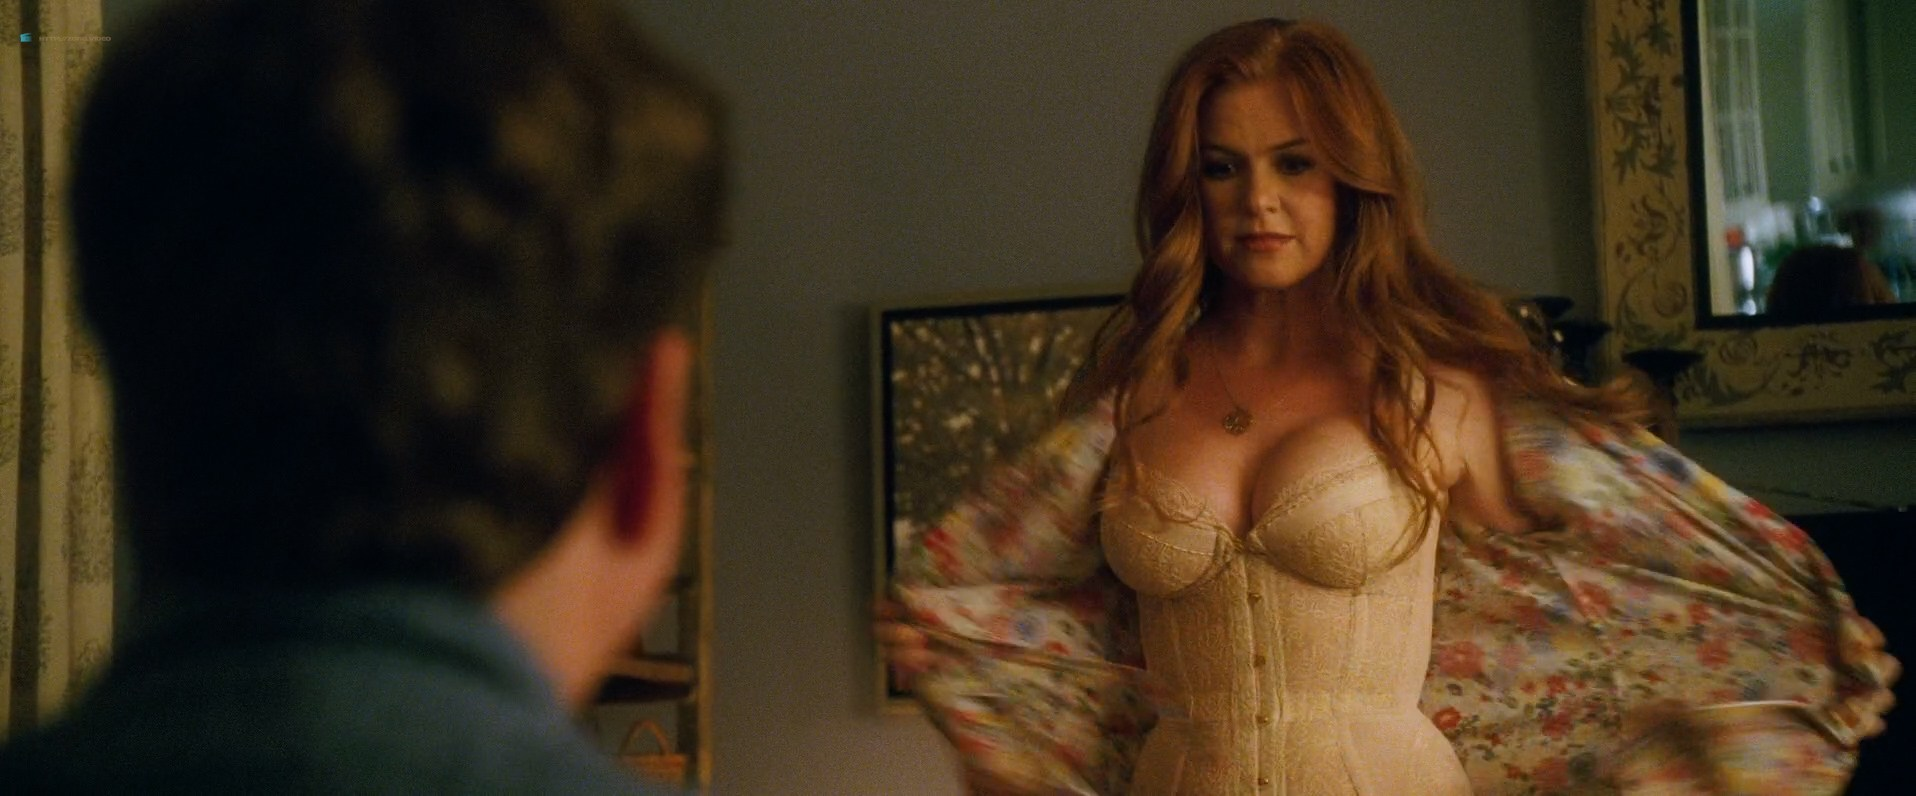 Isla-Fisher-hot-and-sexy-and-Gal-Gadot-hot-in-lingerie-Keeping-Up-with-the-Joneses-2016-HD-1080p-Web-Dl-8.jpg